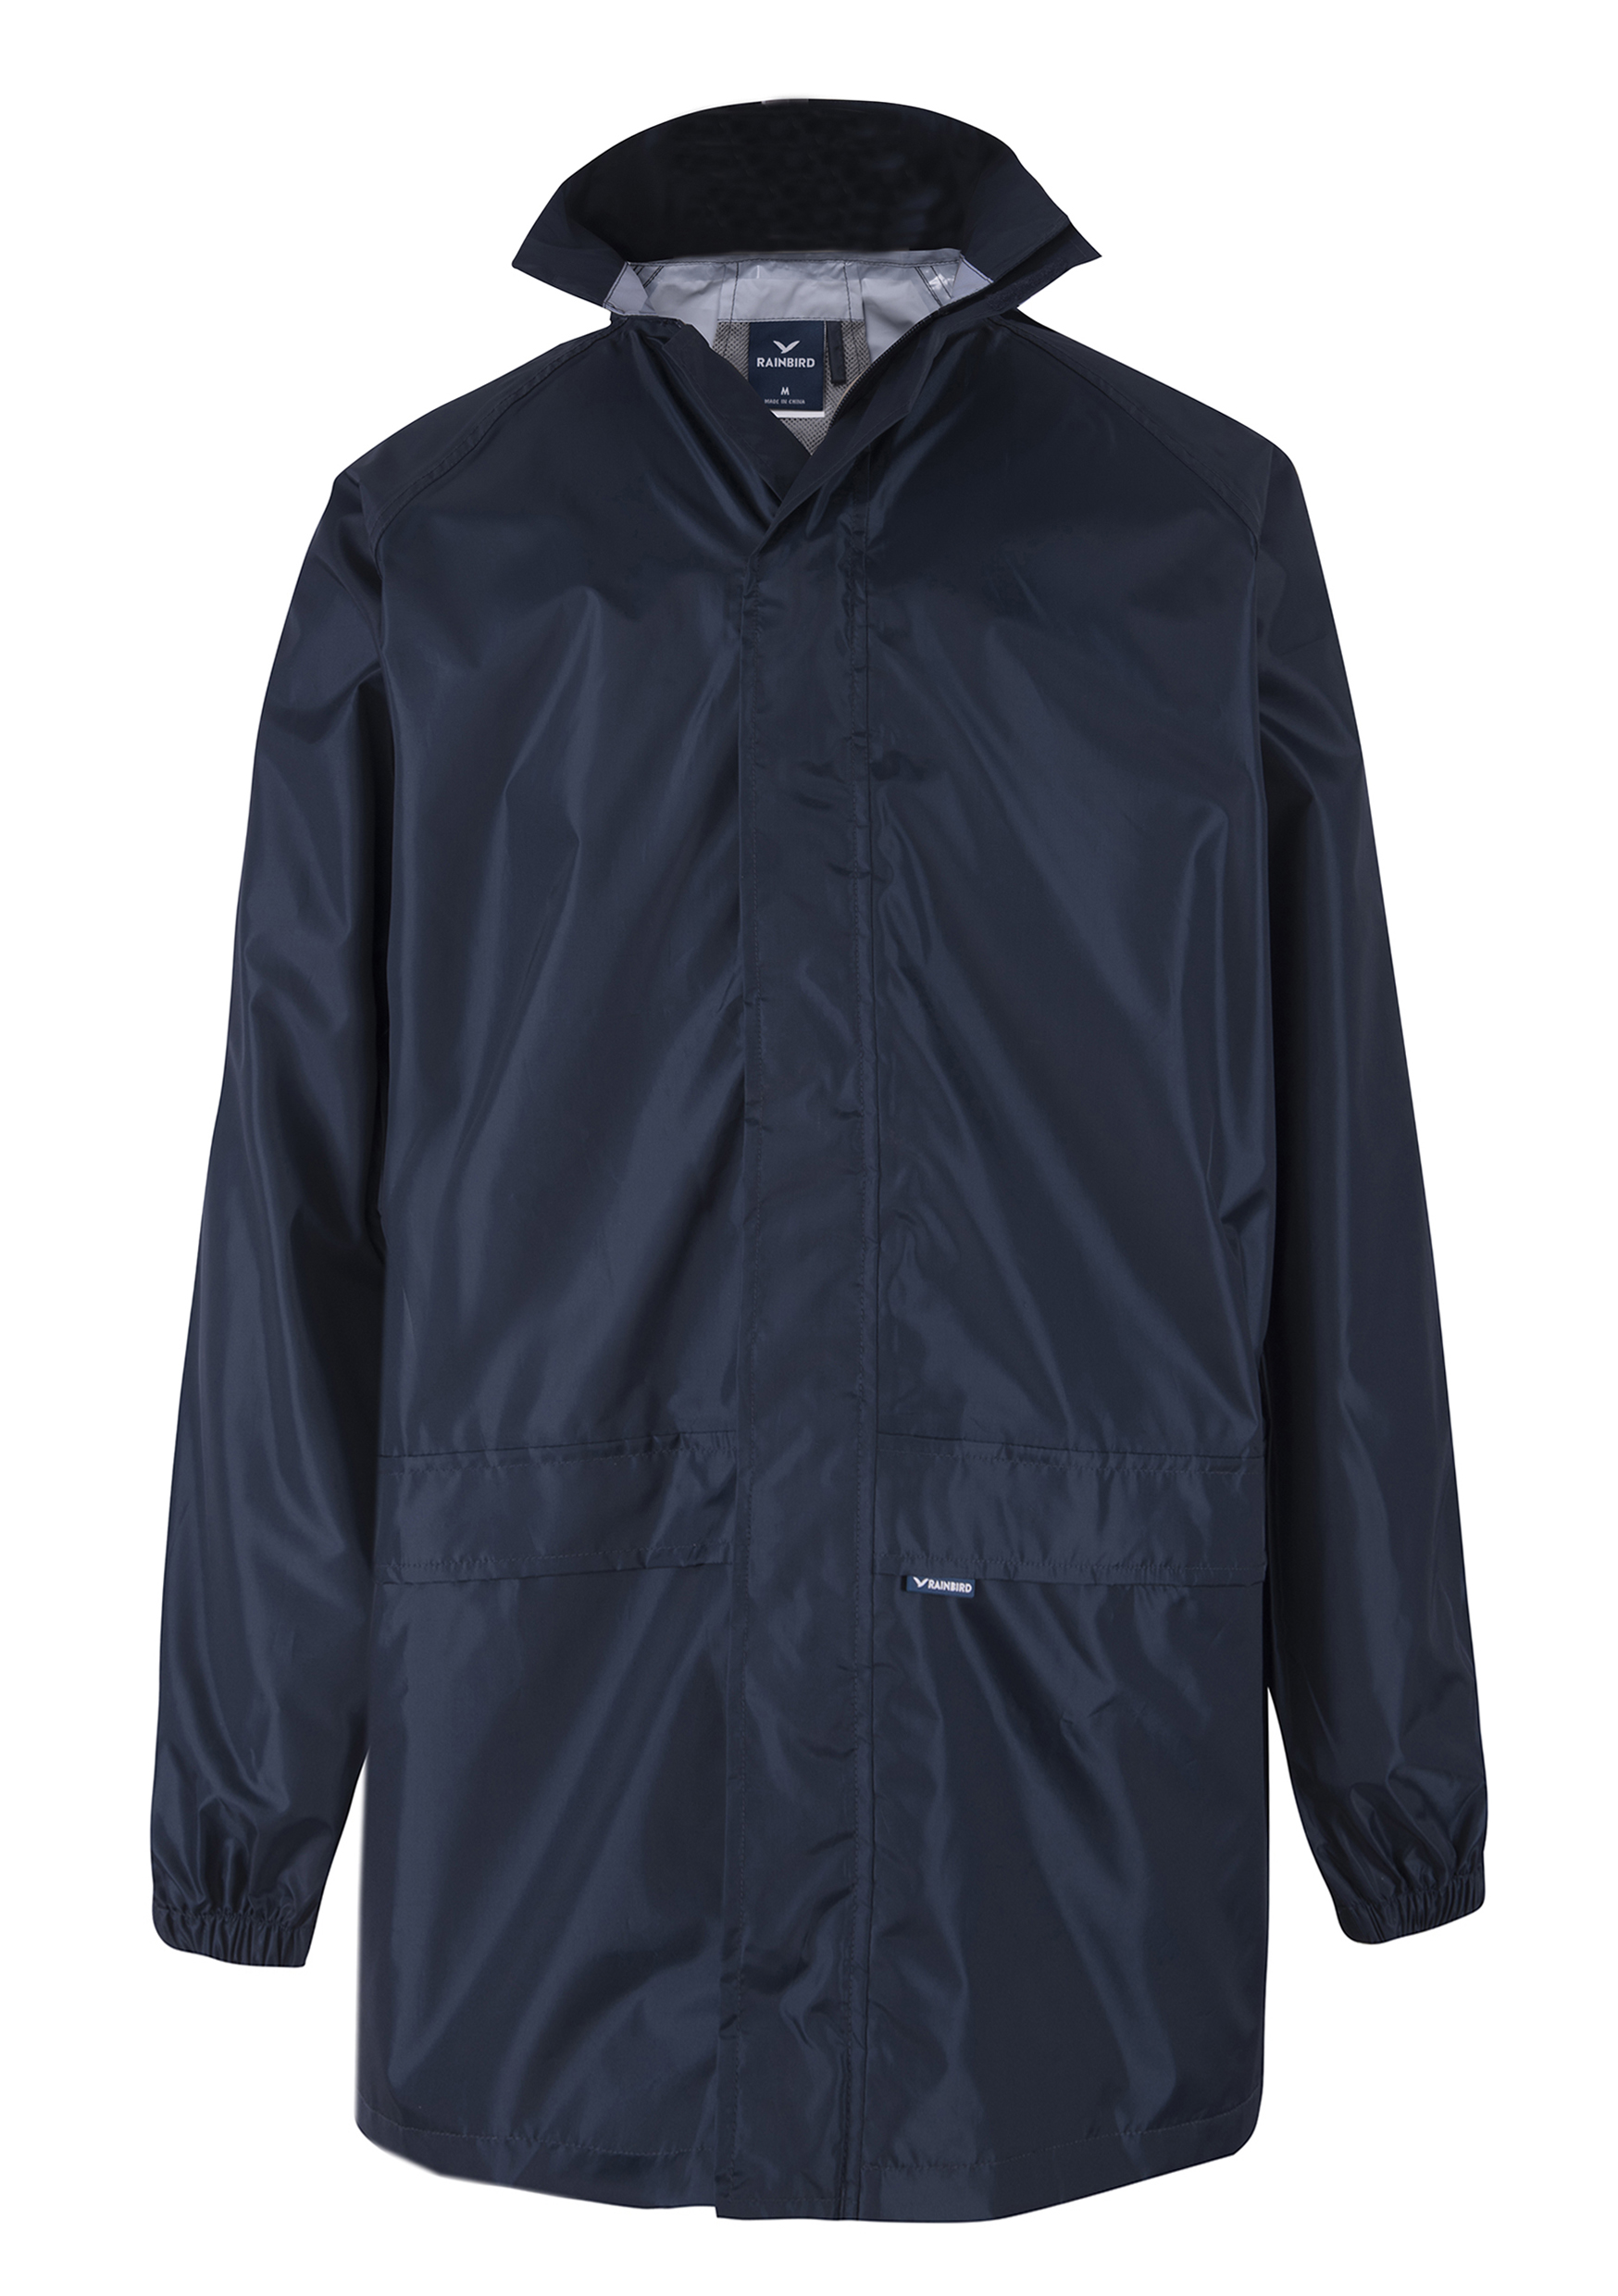 ADULTS CASCADE JACKET-817-NAVY-FORM FRONT